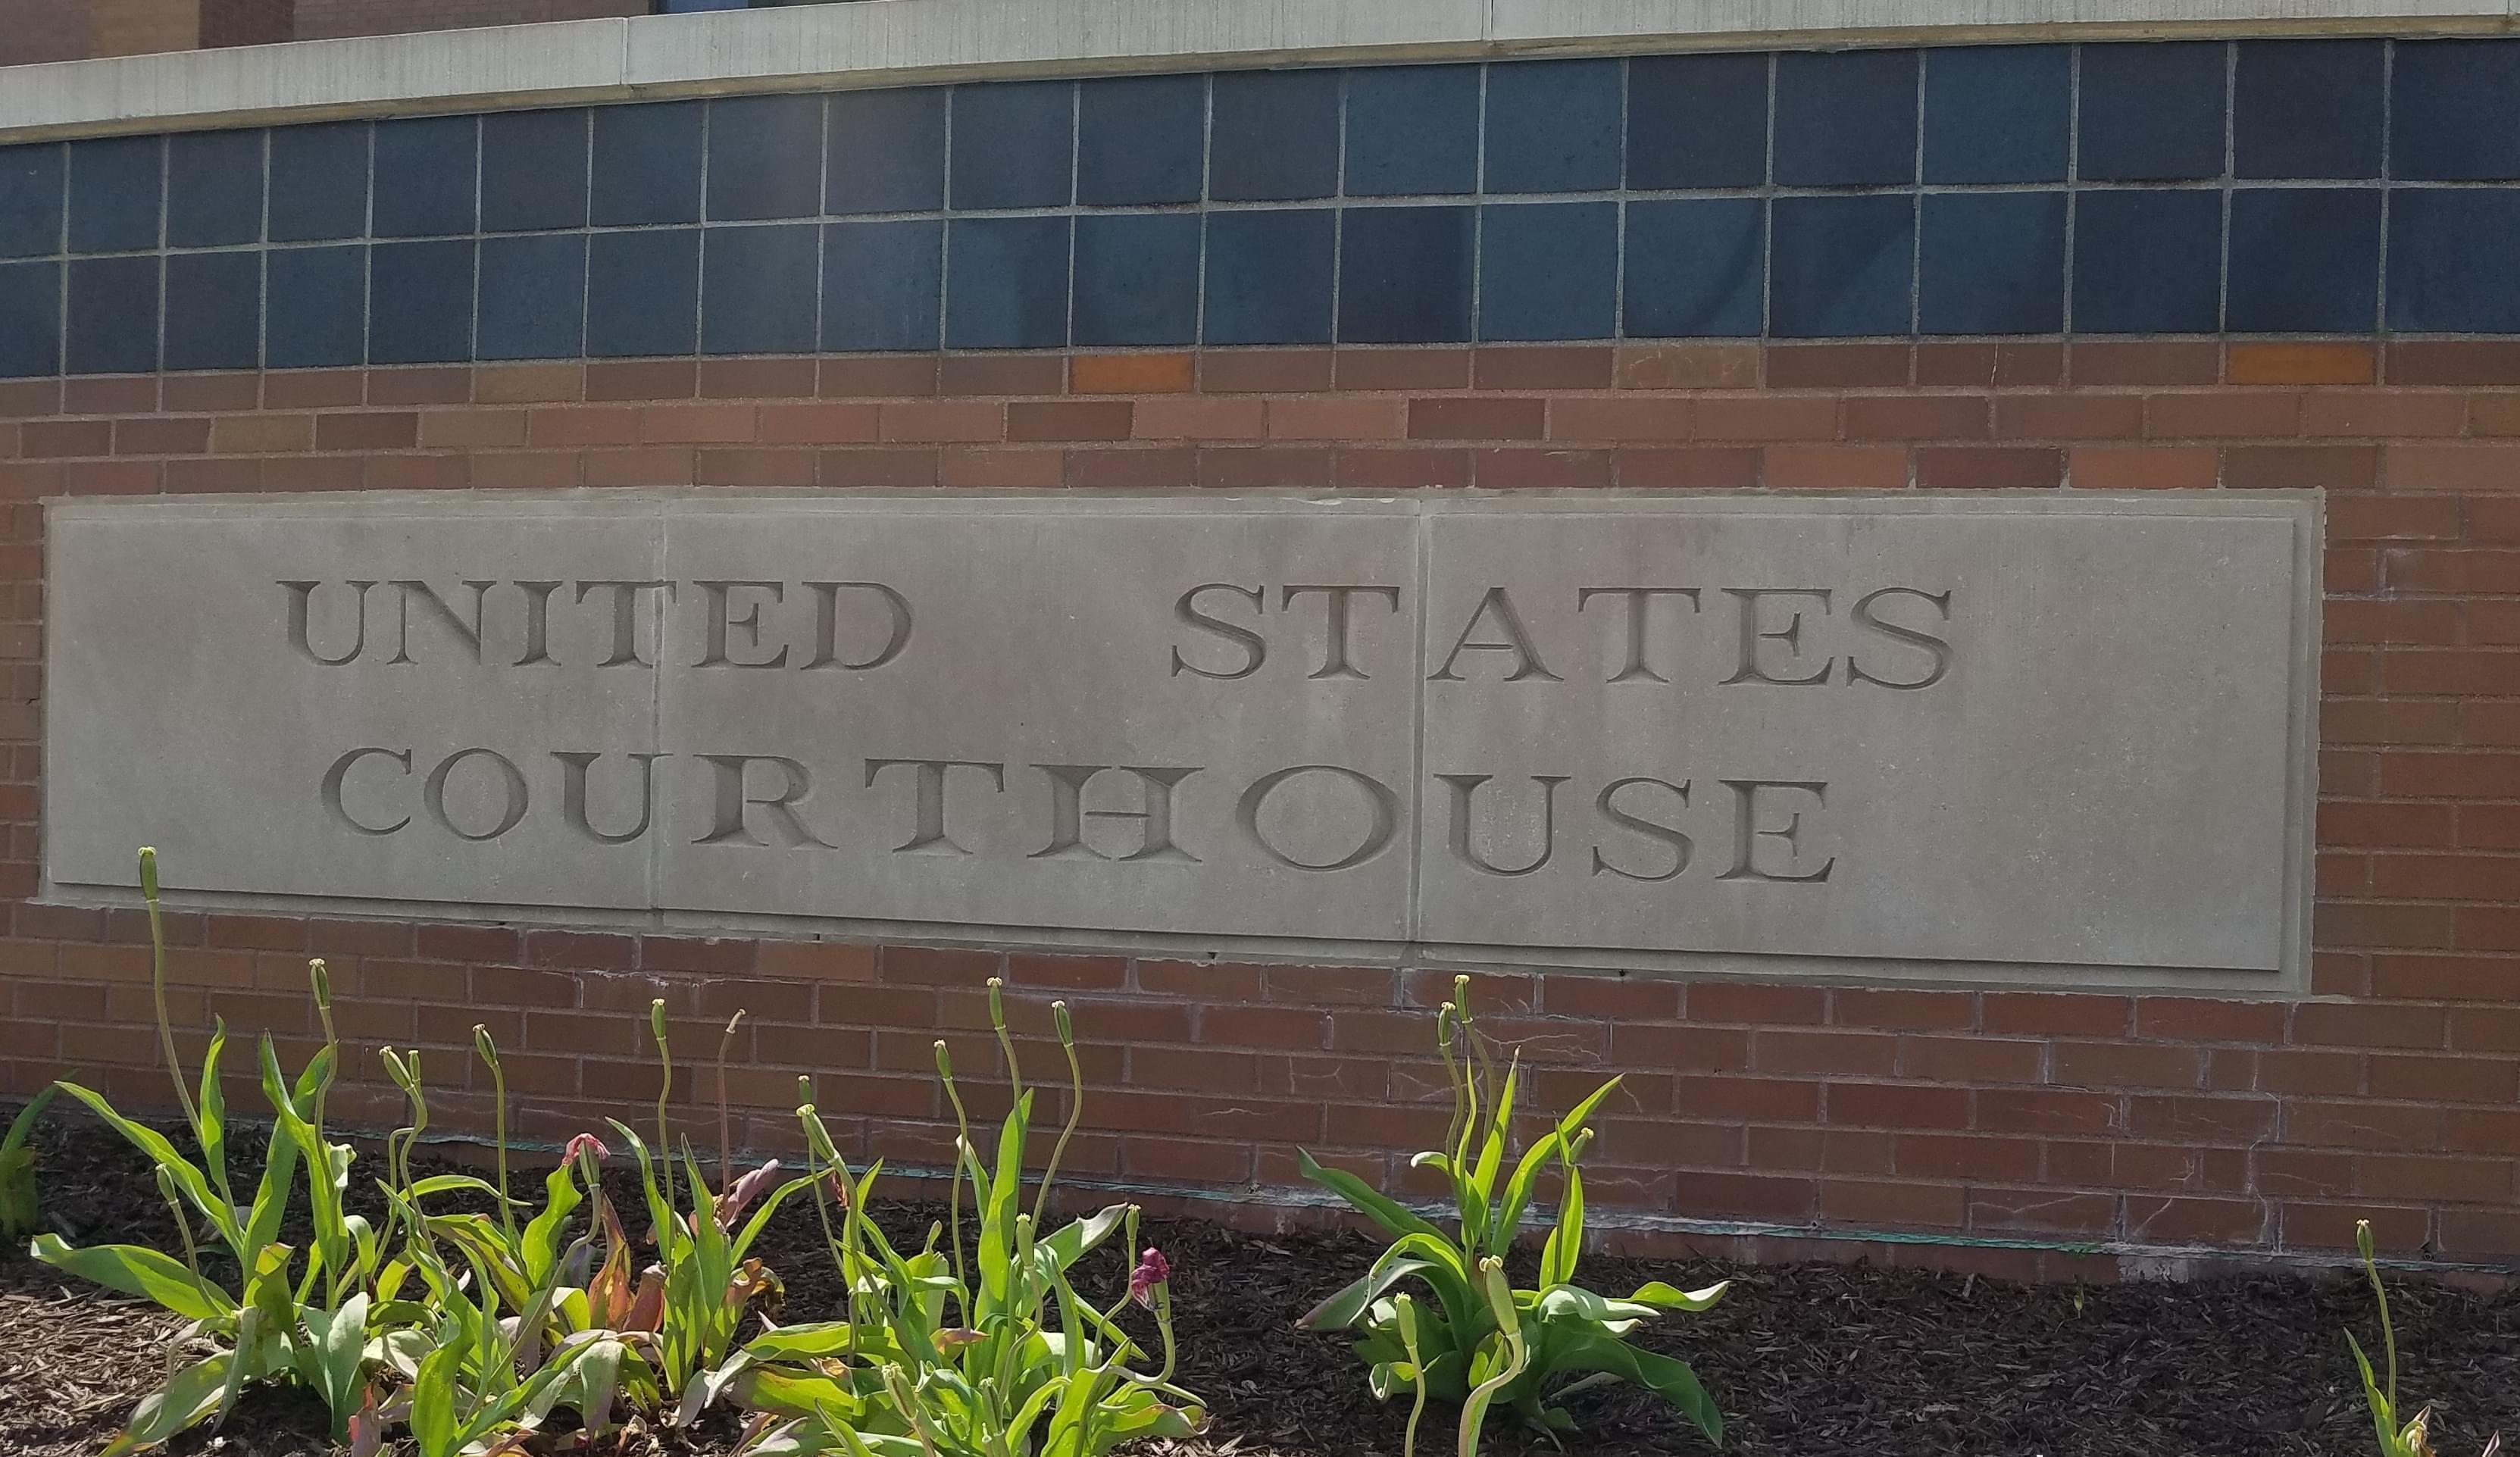 Detail of the exterior of the federal courthouse in Urbana.